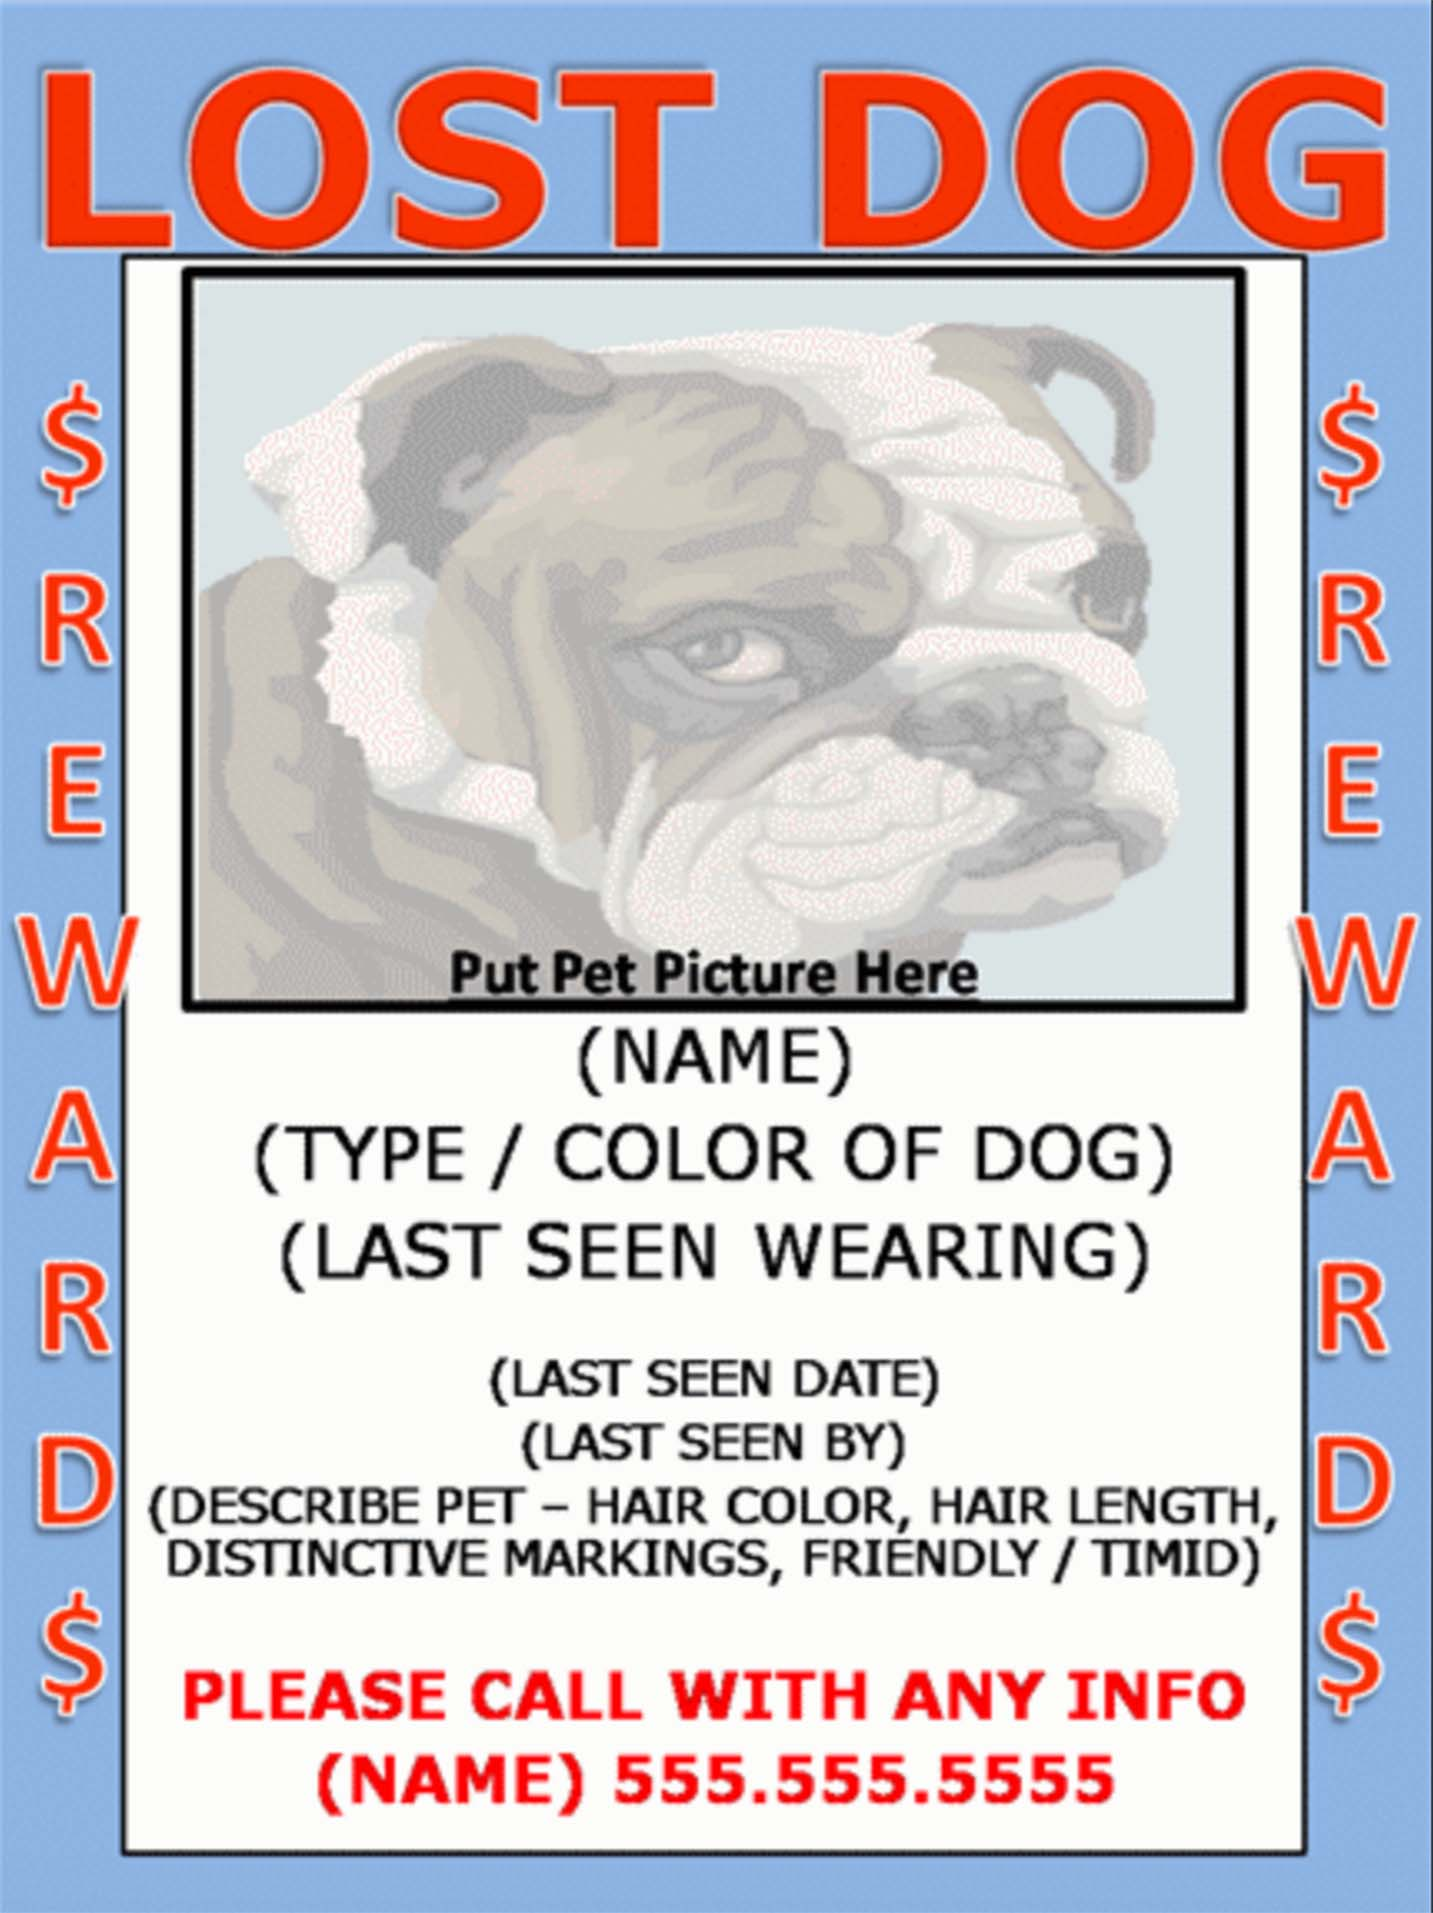 Lost Dog Behavior  Lost Dog Flyer Examples